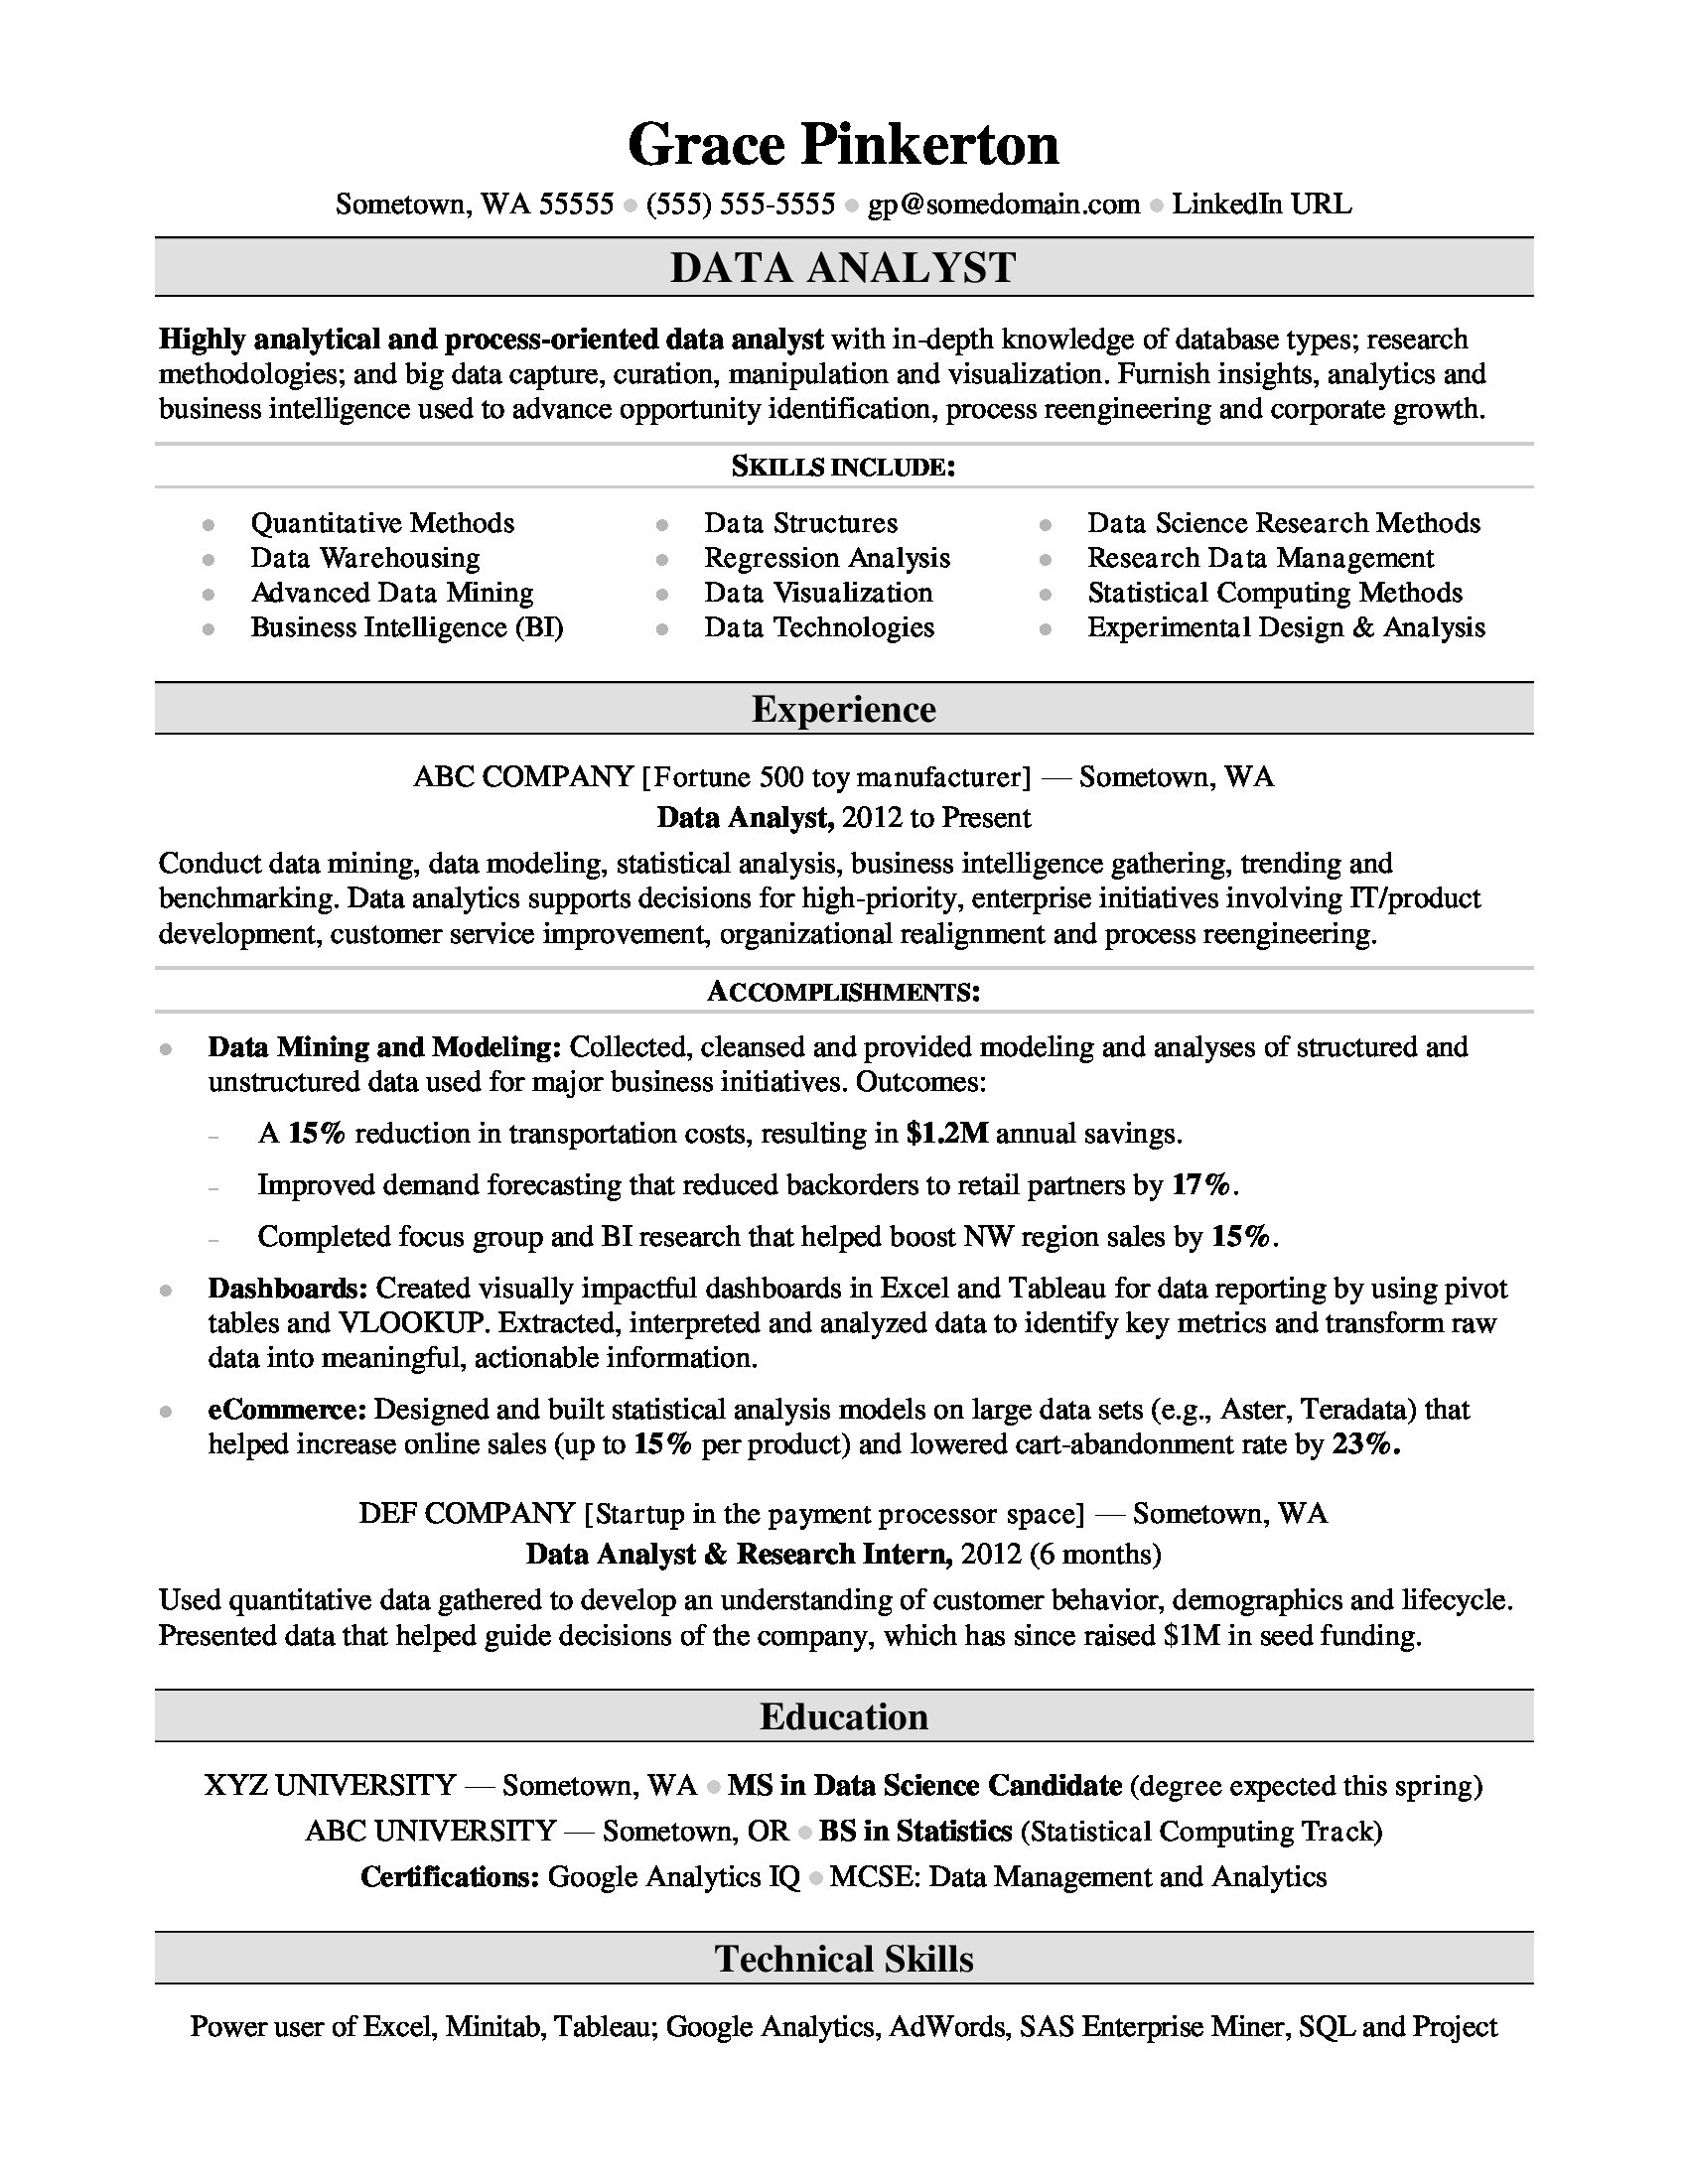 Resume Analysis Stunning Data Analyst Resume Sample Monster